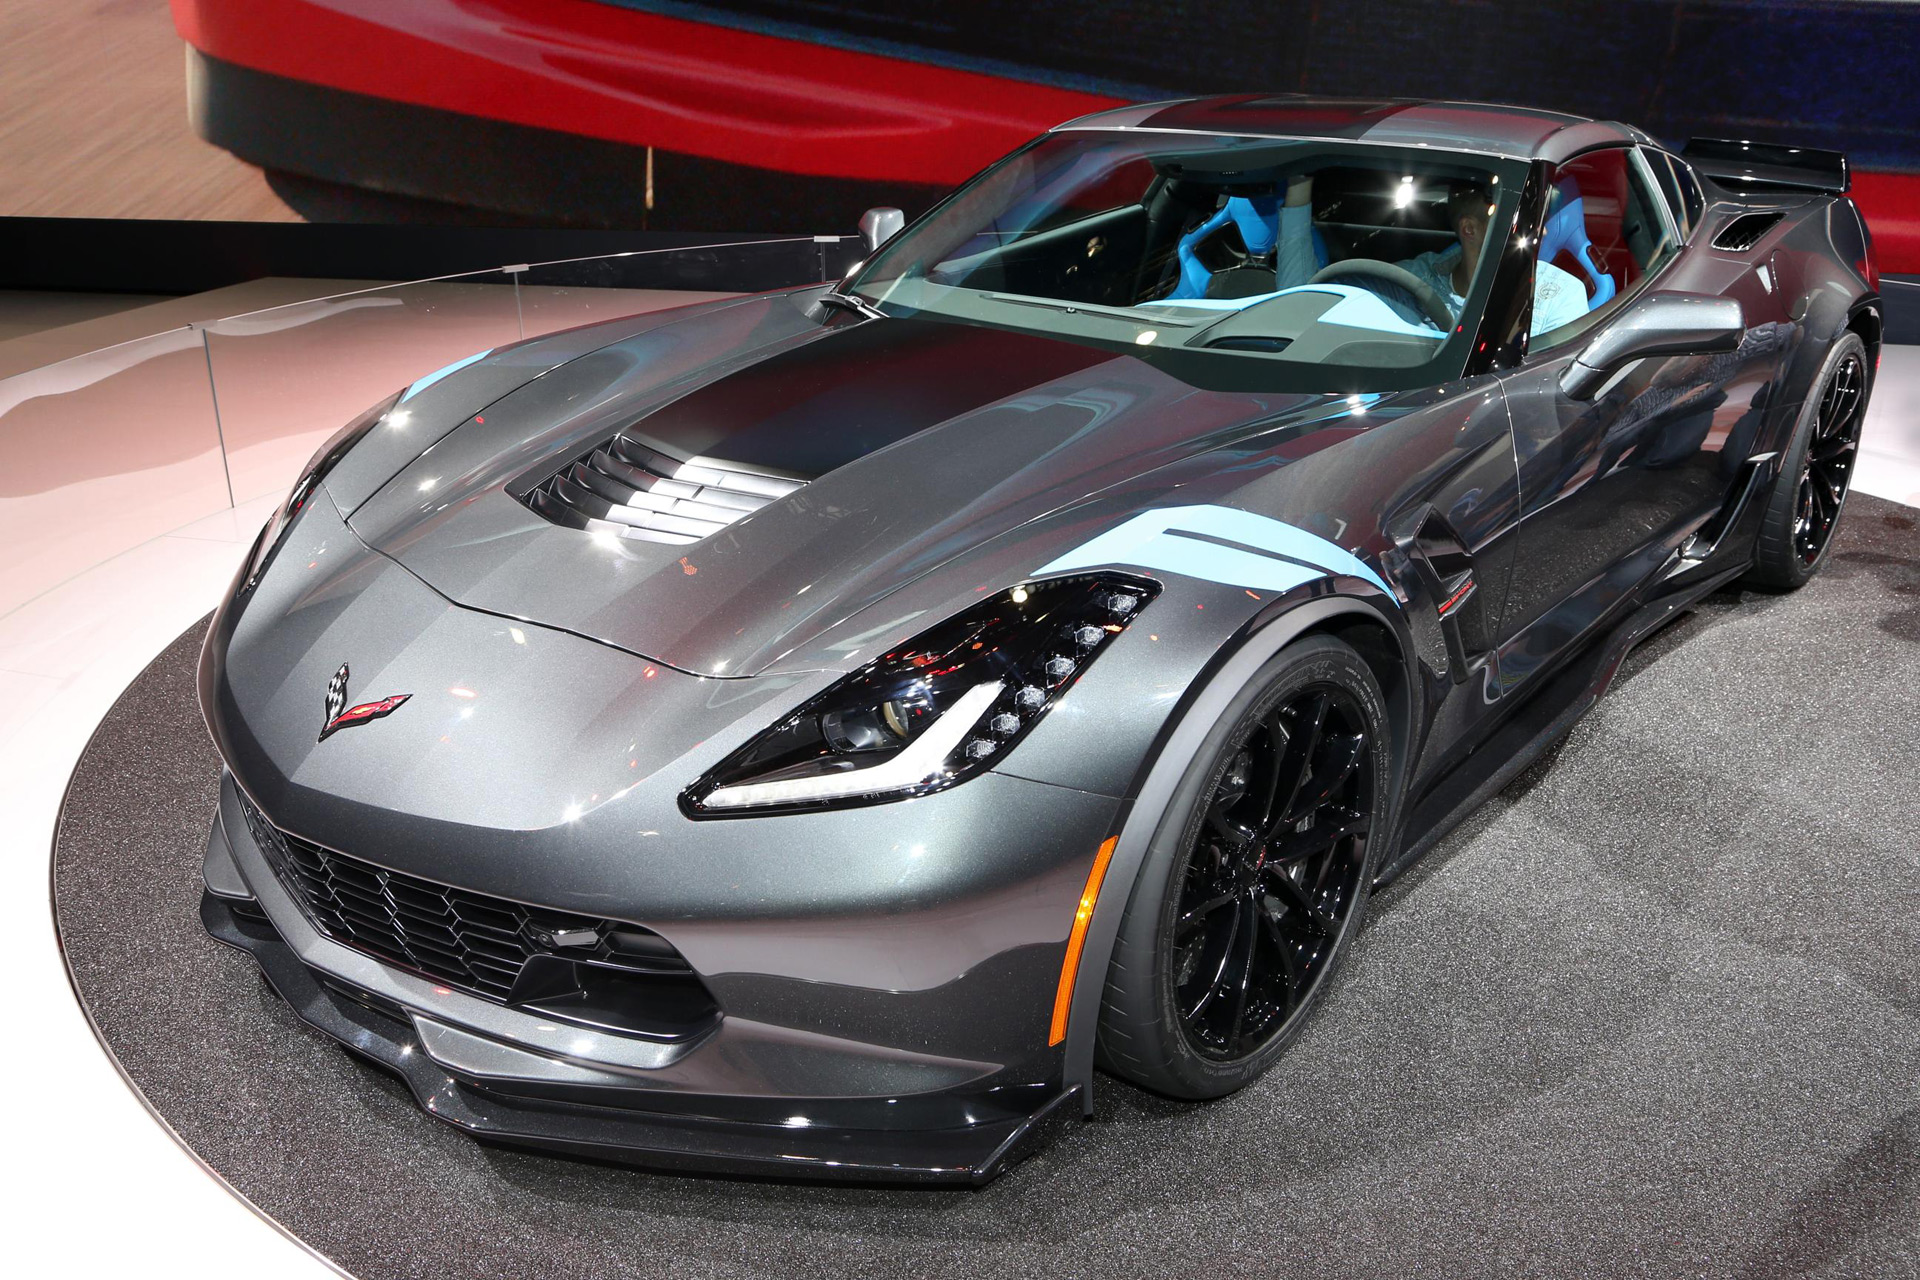 2017 chevy corvette grand sport debuts at geneva motor show live photos. Black Bedroom Furniture Sets. Home Design Ideas